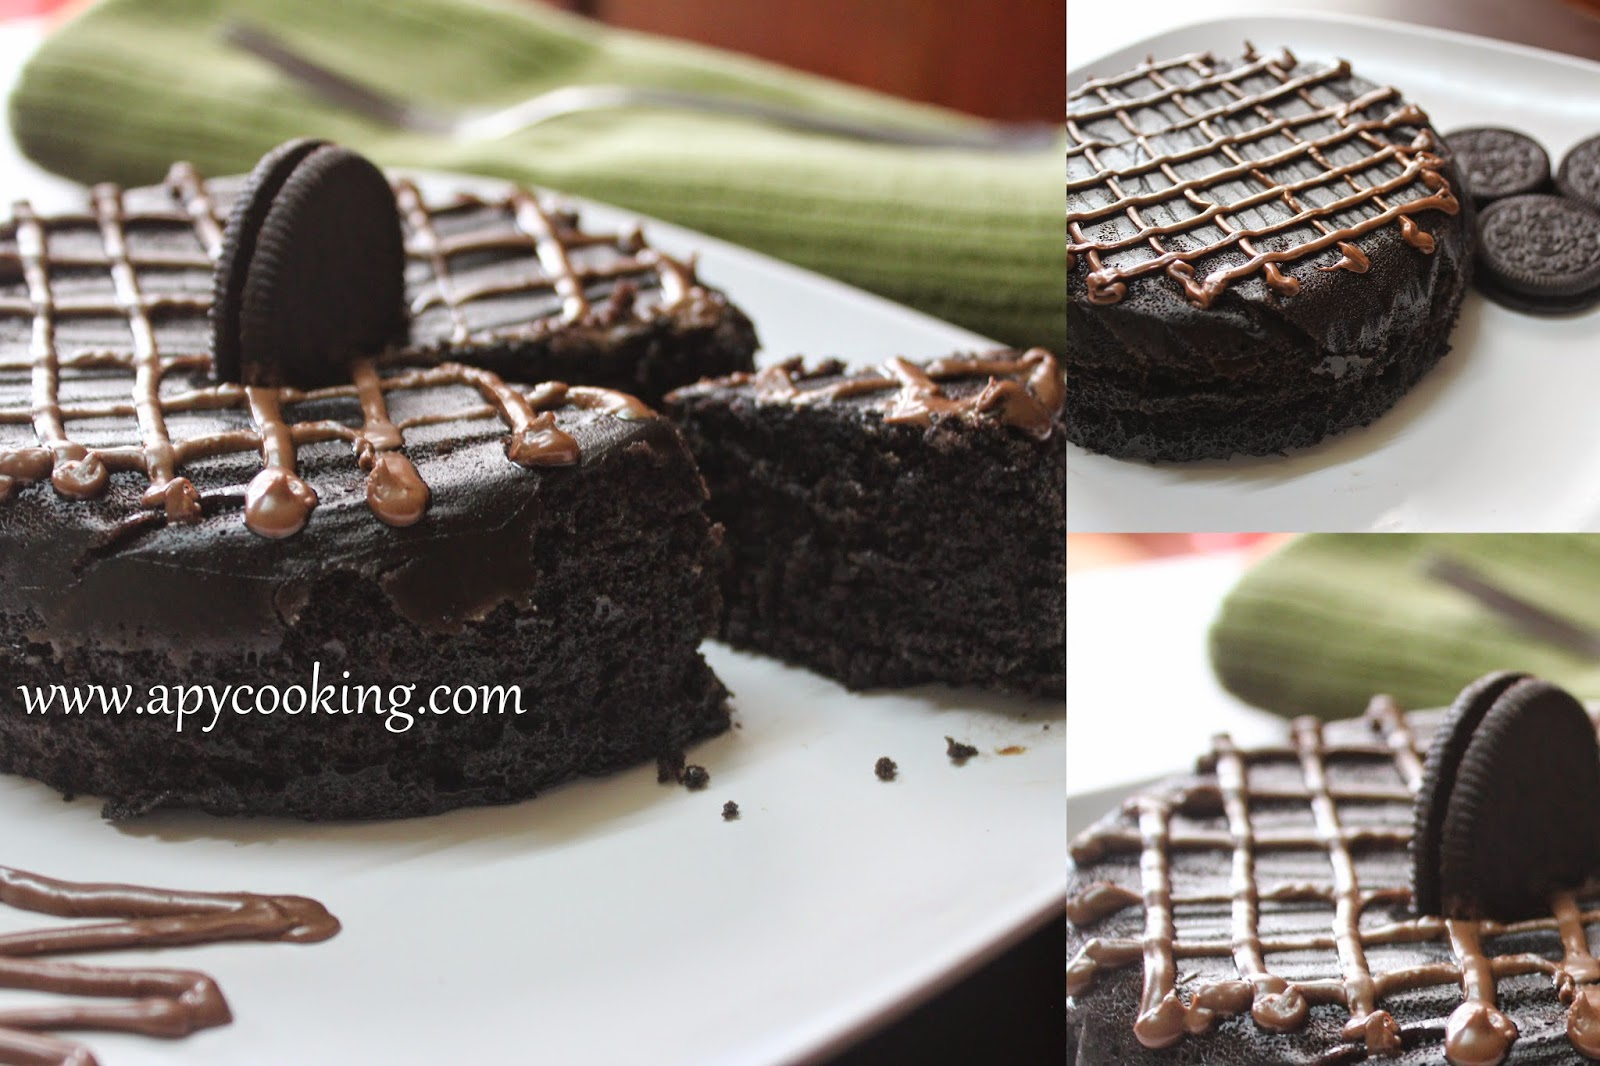 Apy Cooking Super Easy 5 Minute Eggless Microwave Oreo Biscuit Cake